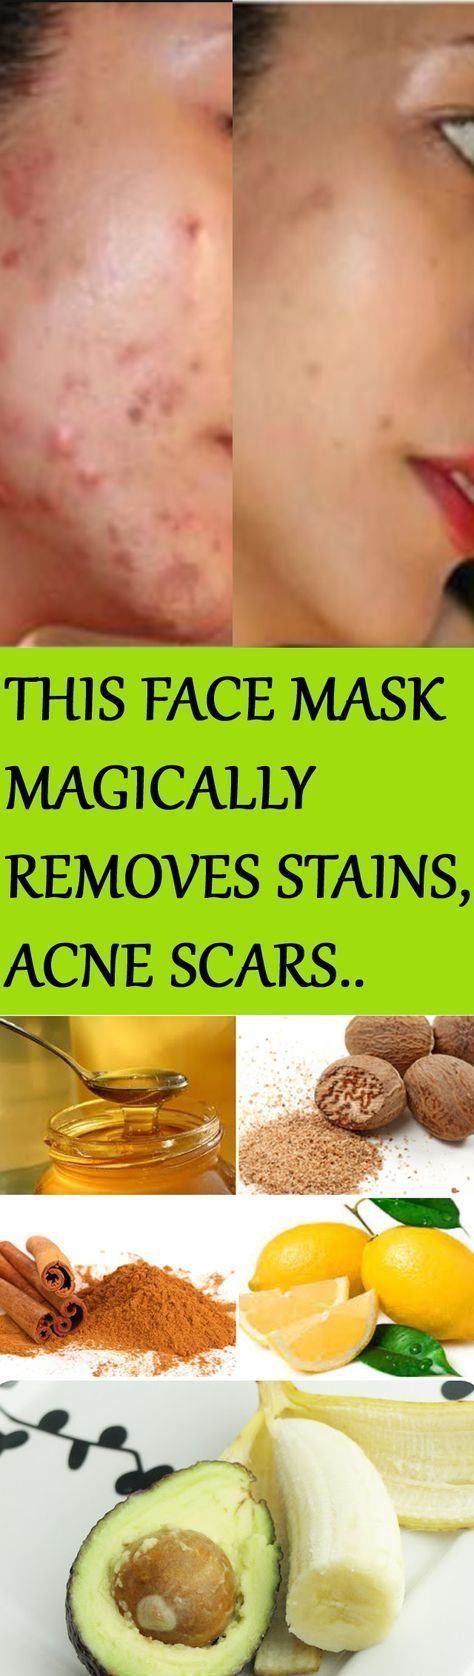 Ladies: How to remove dark spots on face caused by pimples